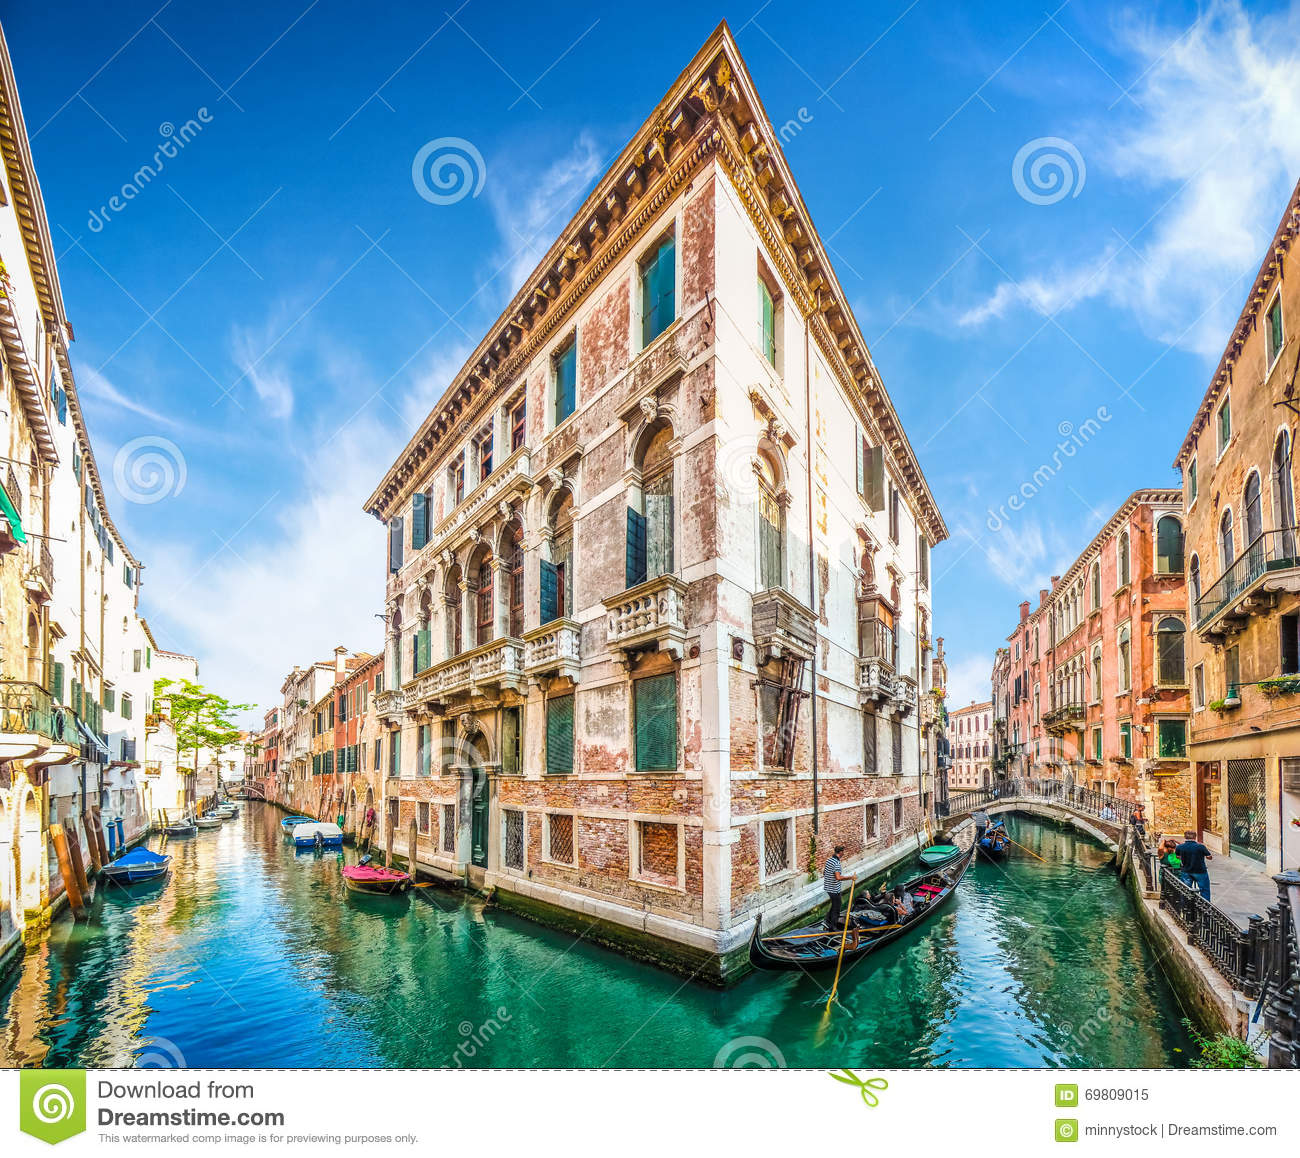 traditional gondolas on narrow canal between colorful